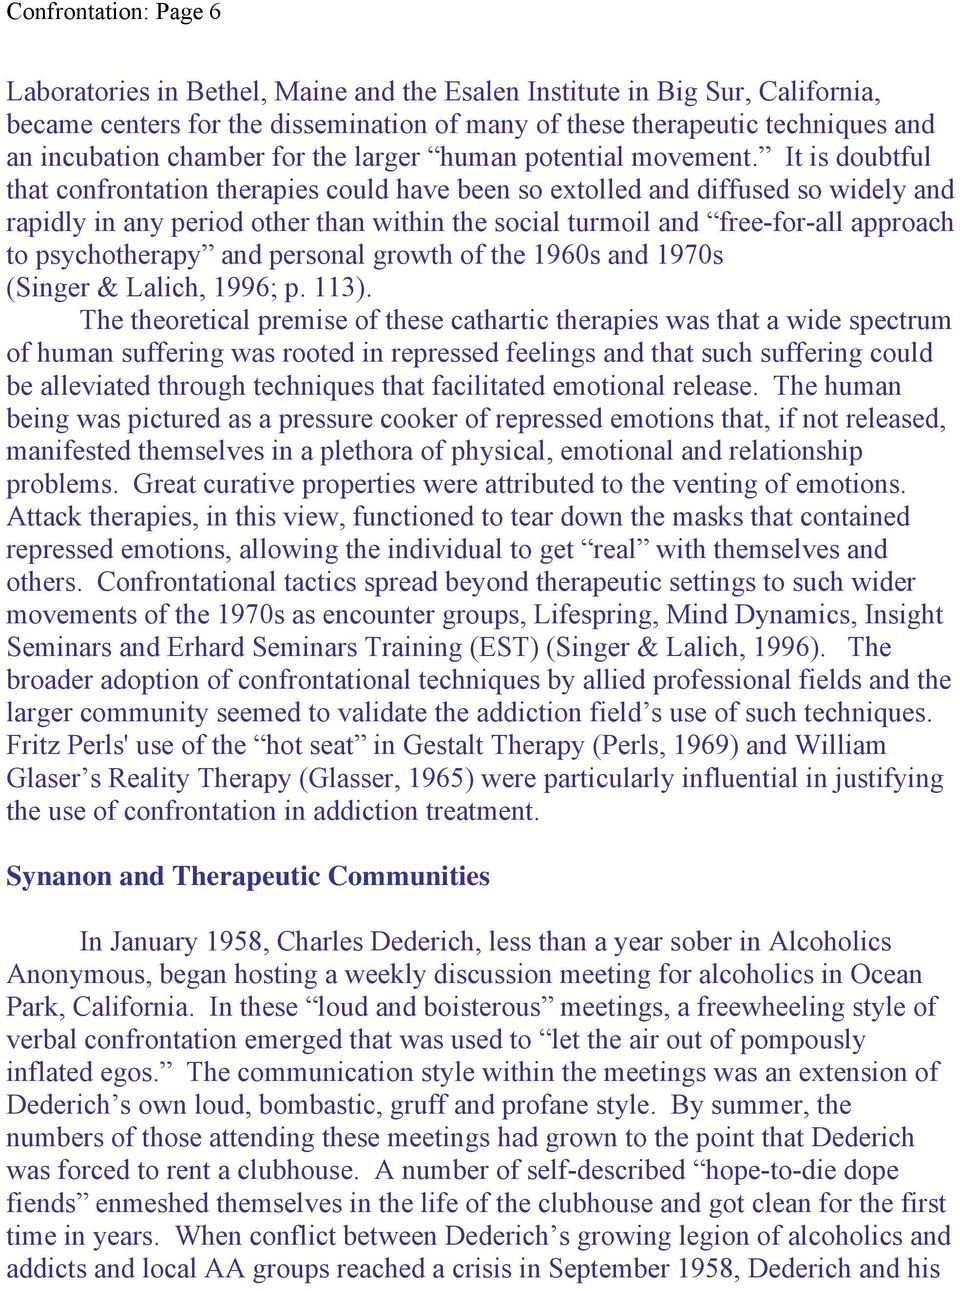 It is doubtful that confrontation therapies could have been so extolled and diffused so widely and rapidly in any period other than within the social turmoil and free-for-all approach to